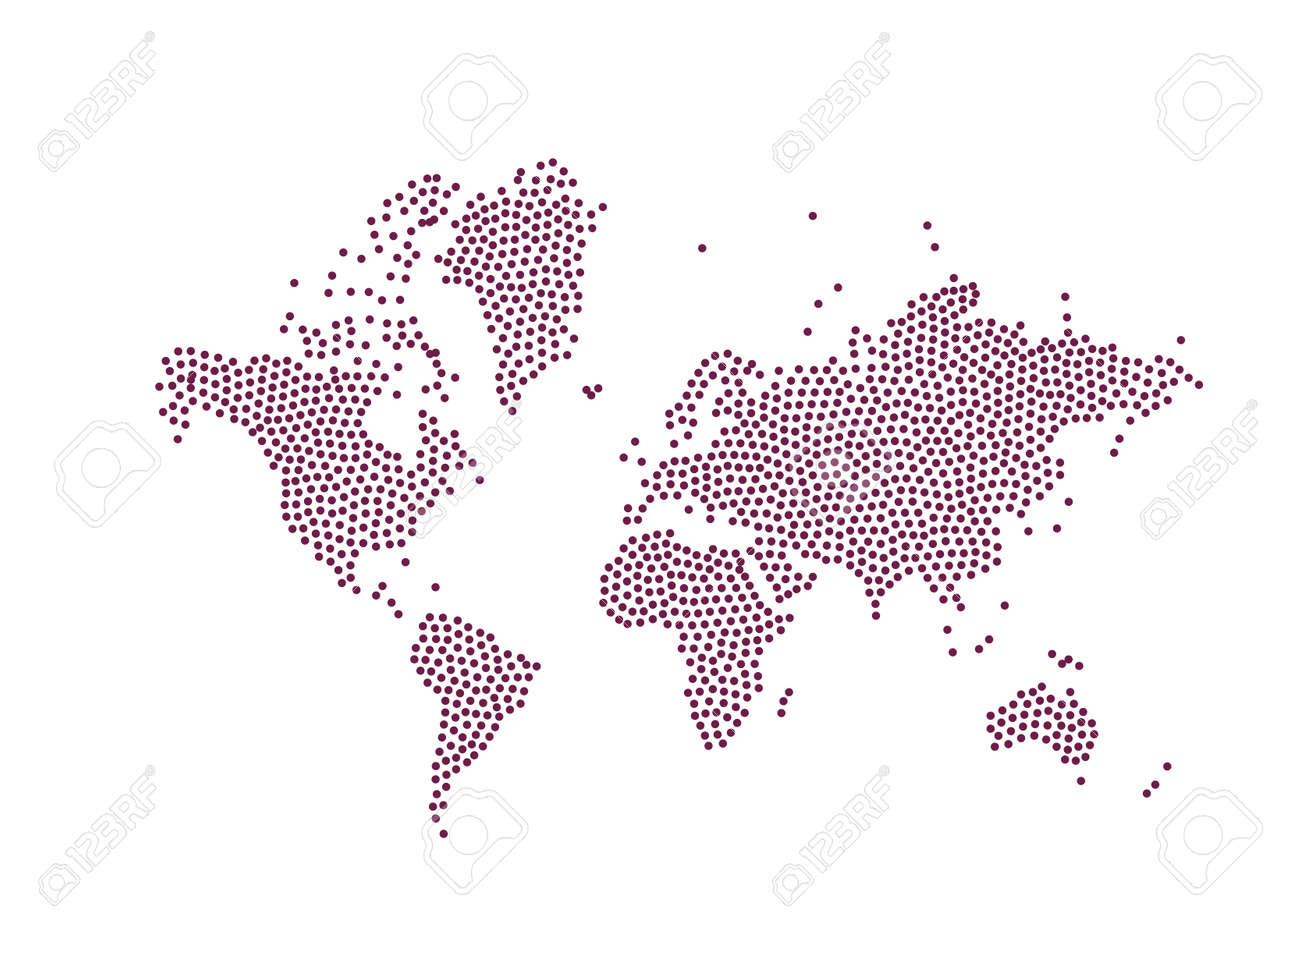 World map isolated on white background flat world earth world map isolated on white background flat world earth illustration stock vector 84572109 gumiabroncs Image collections